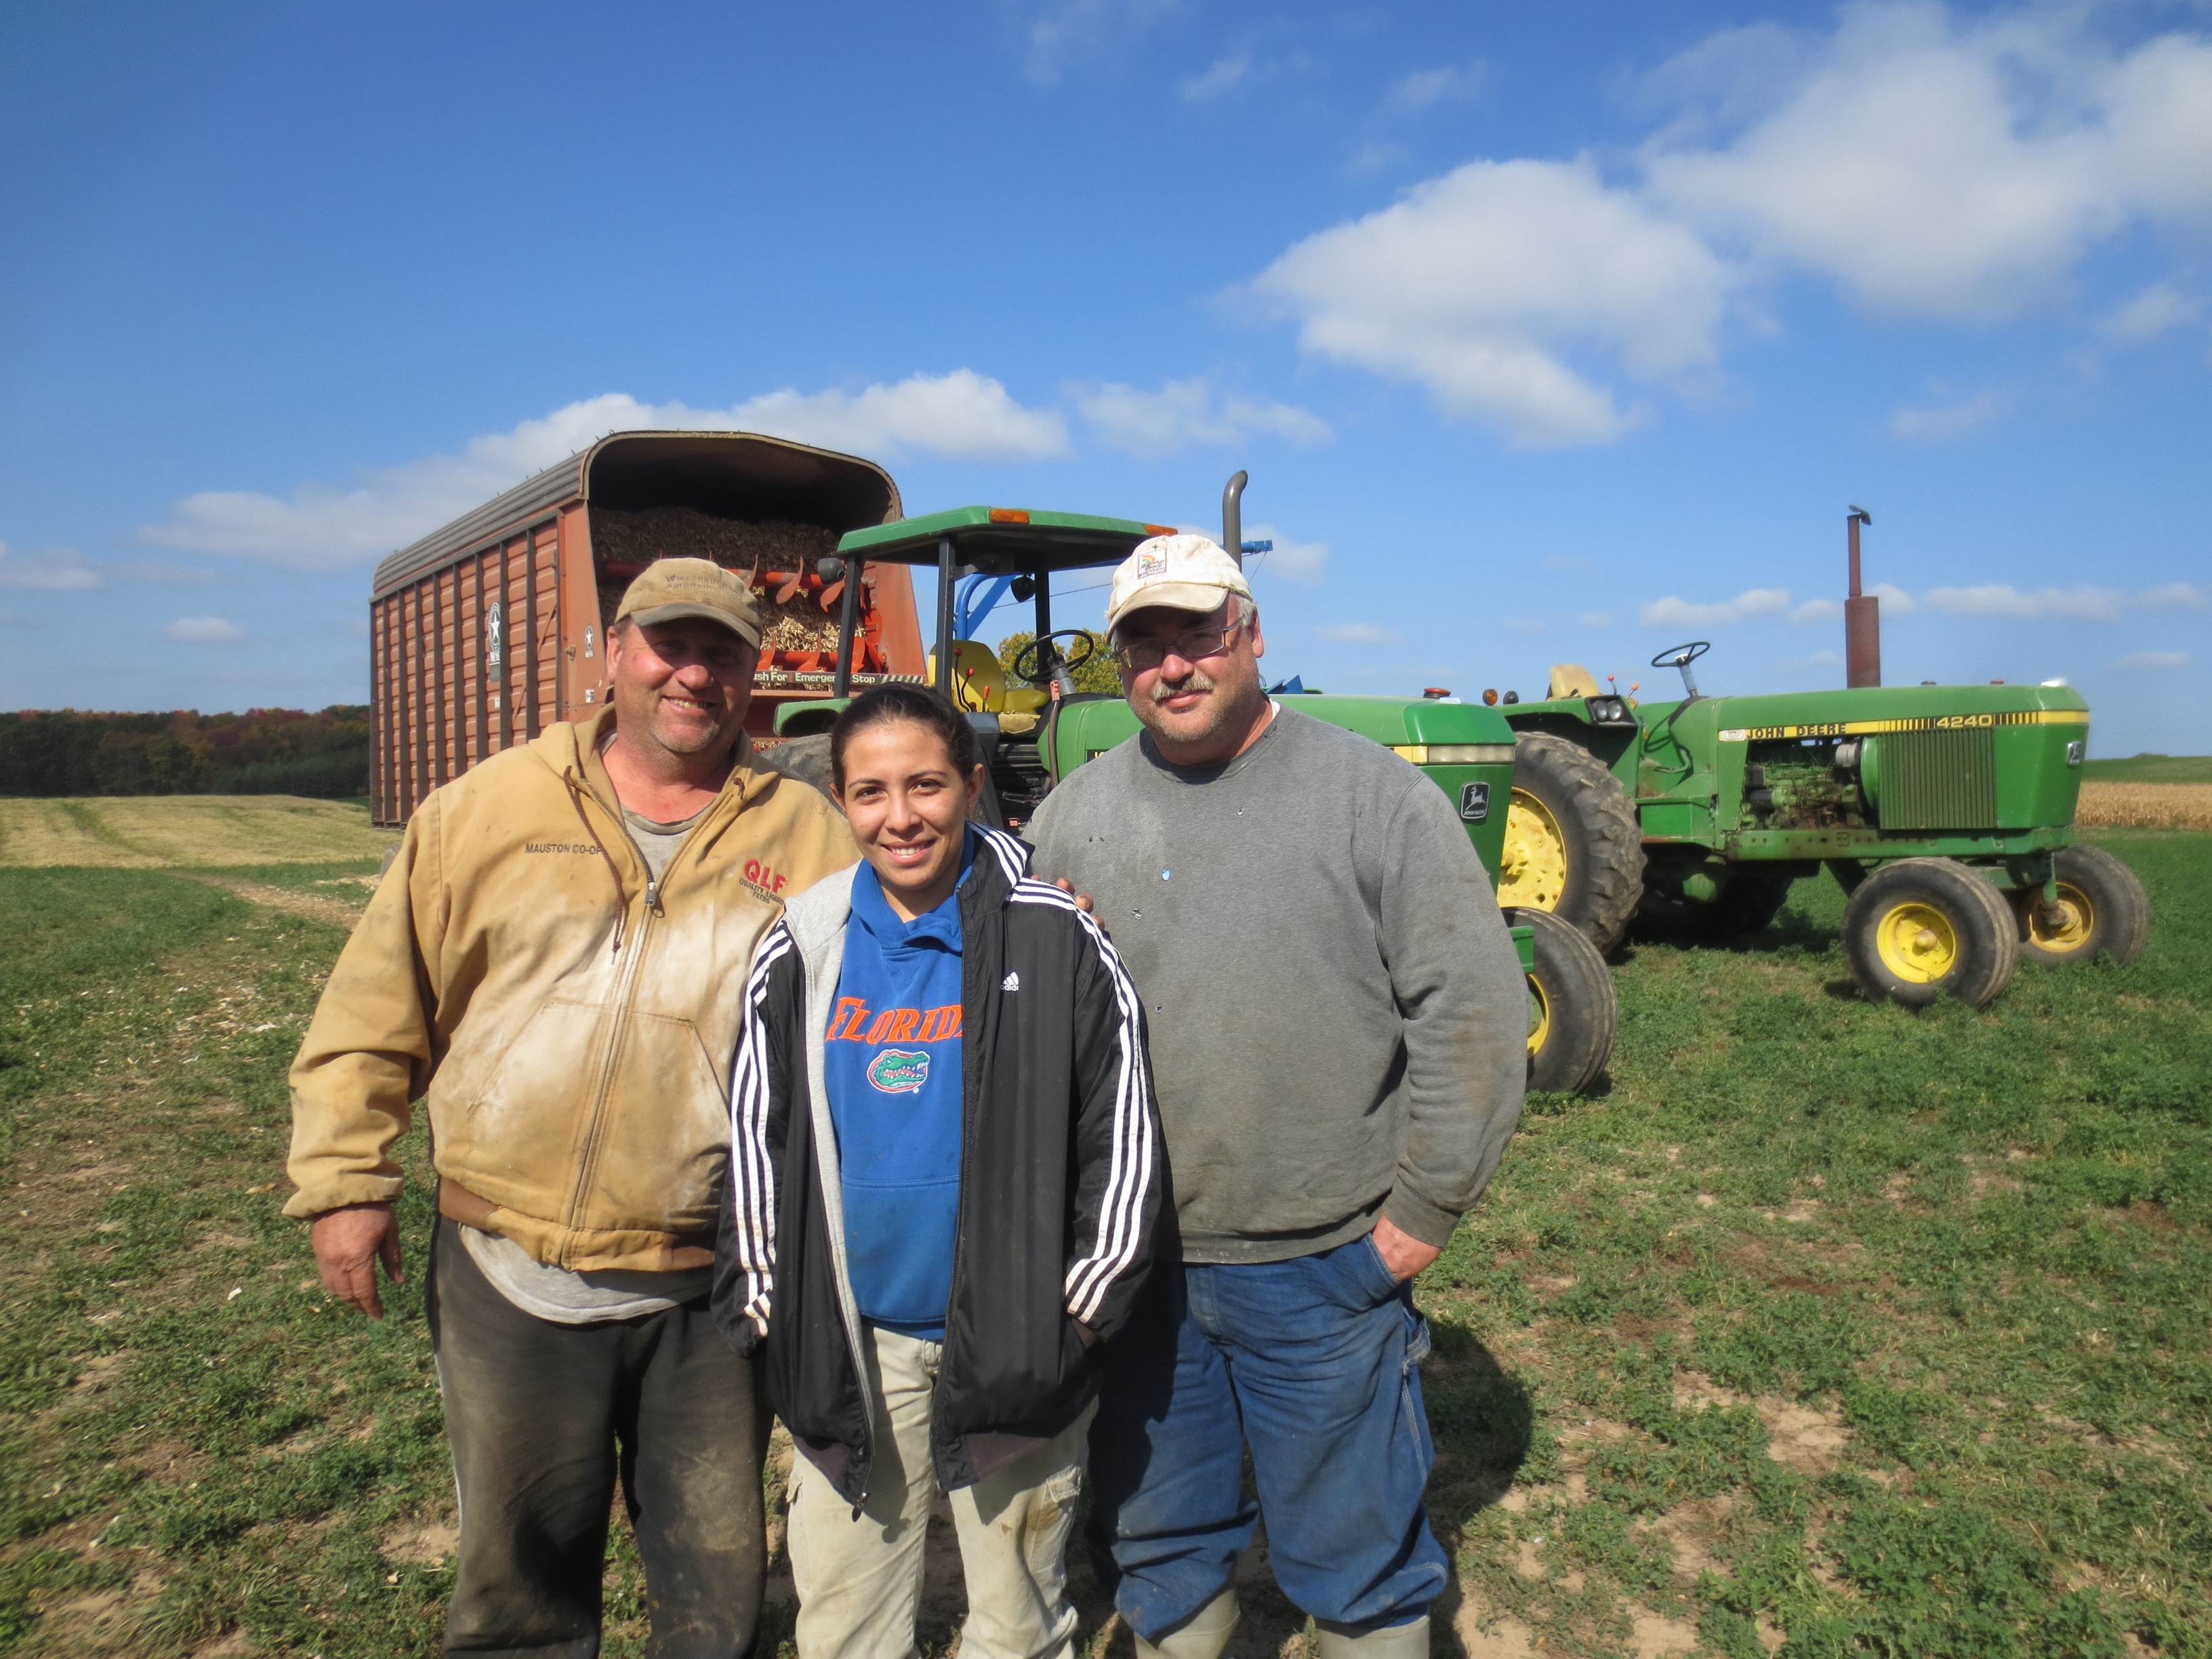 2012.10 visit Dairylane Farms -intern Espinoza Jorling with host